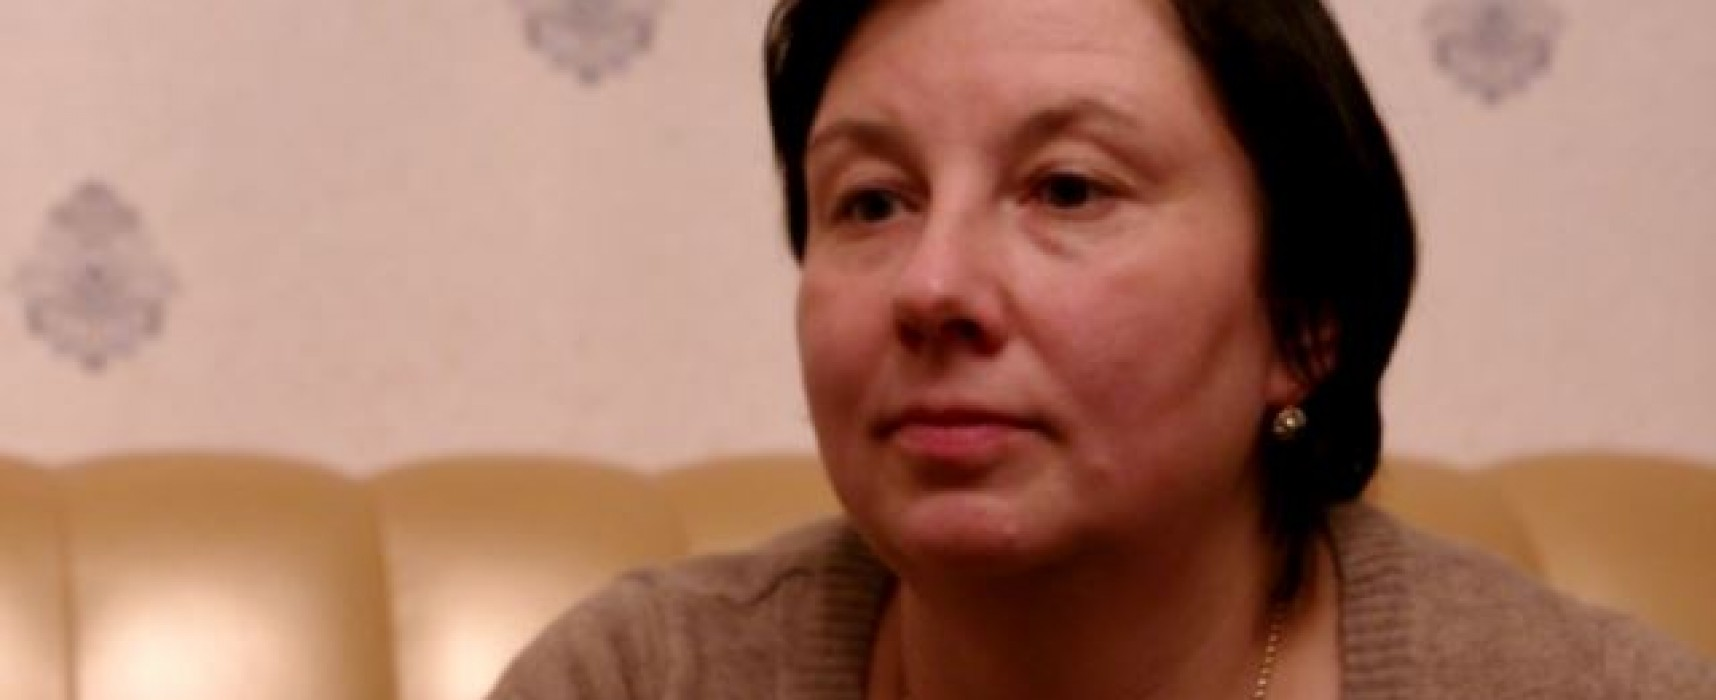 Russian Mom Faces Years In Prison For Sharing Posts On Ukraine